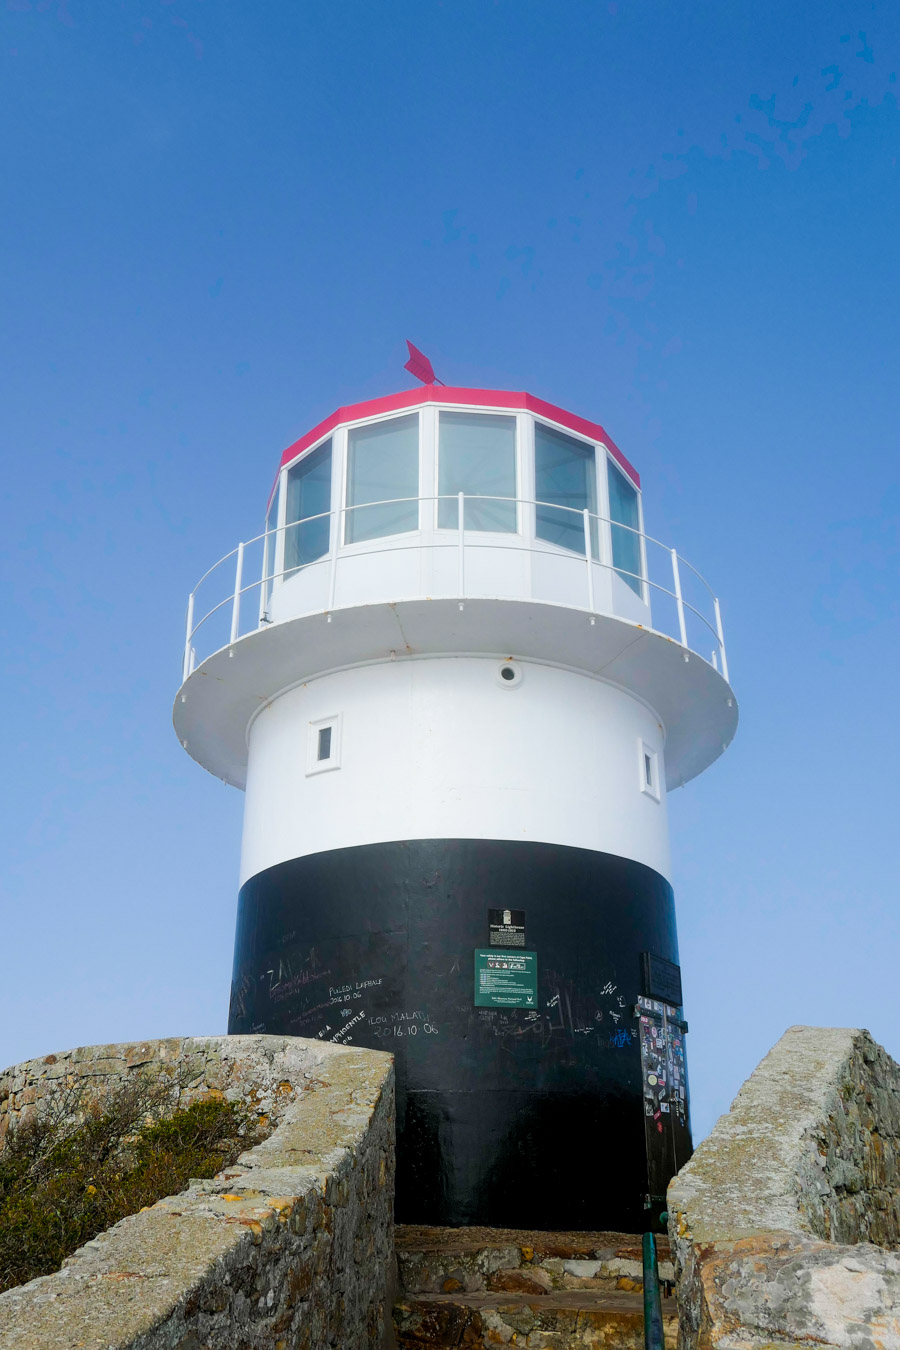 Activities in Cape Town Travel Blog - Day Trip to Cape of Good Hope - Cape Point Lighthouse